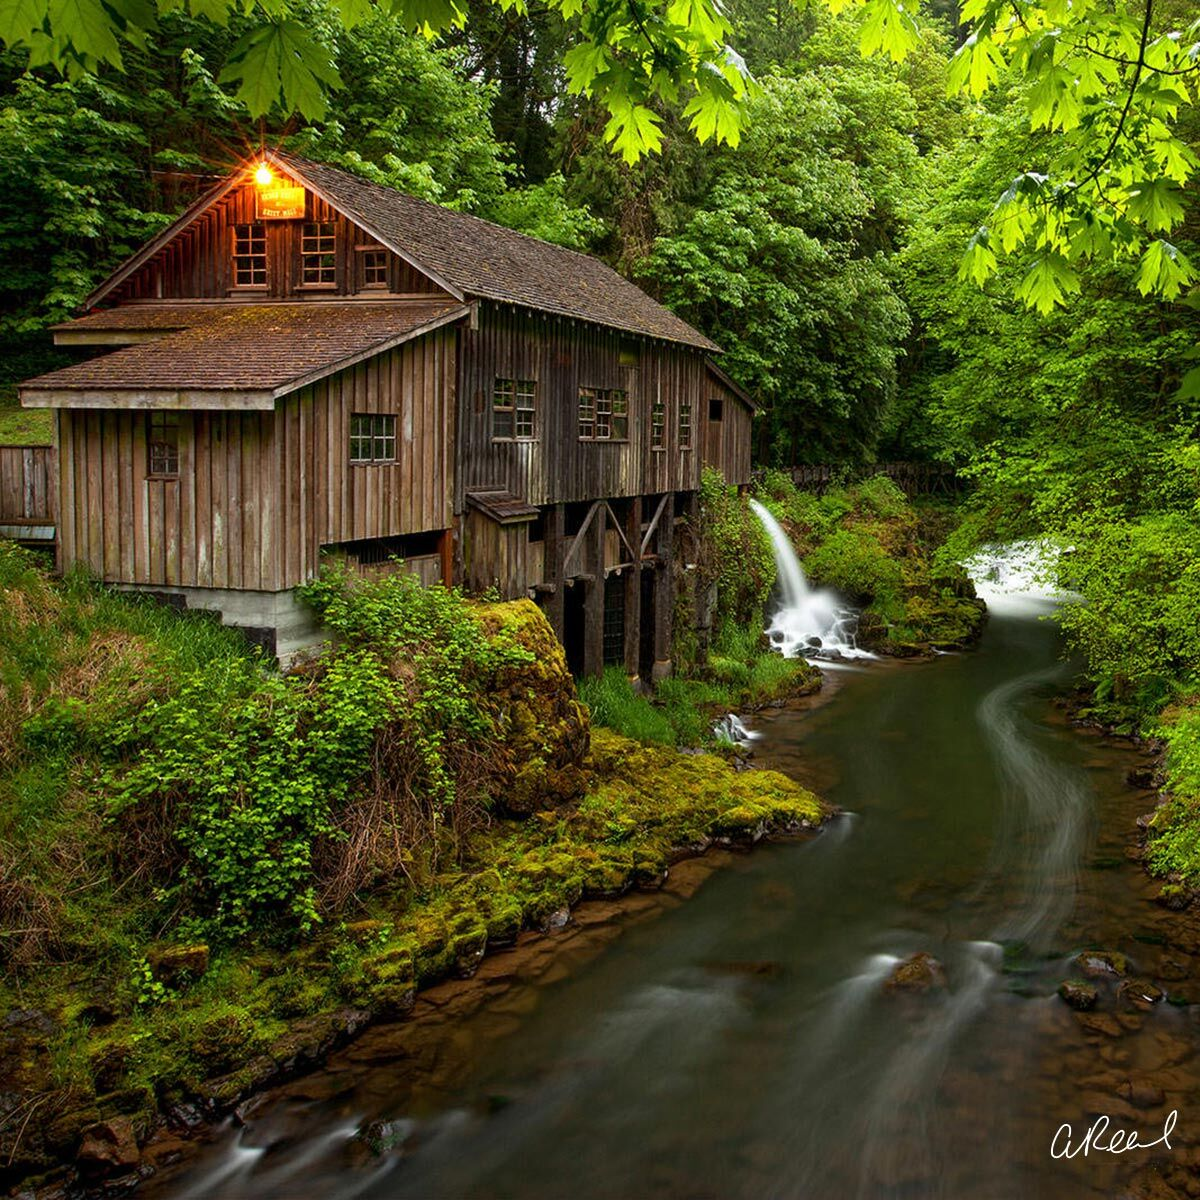 A fine art photograph of the Grist Mill in Woodland Washington during Spring.